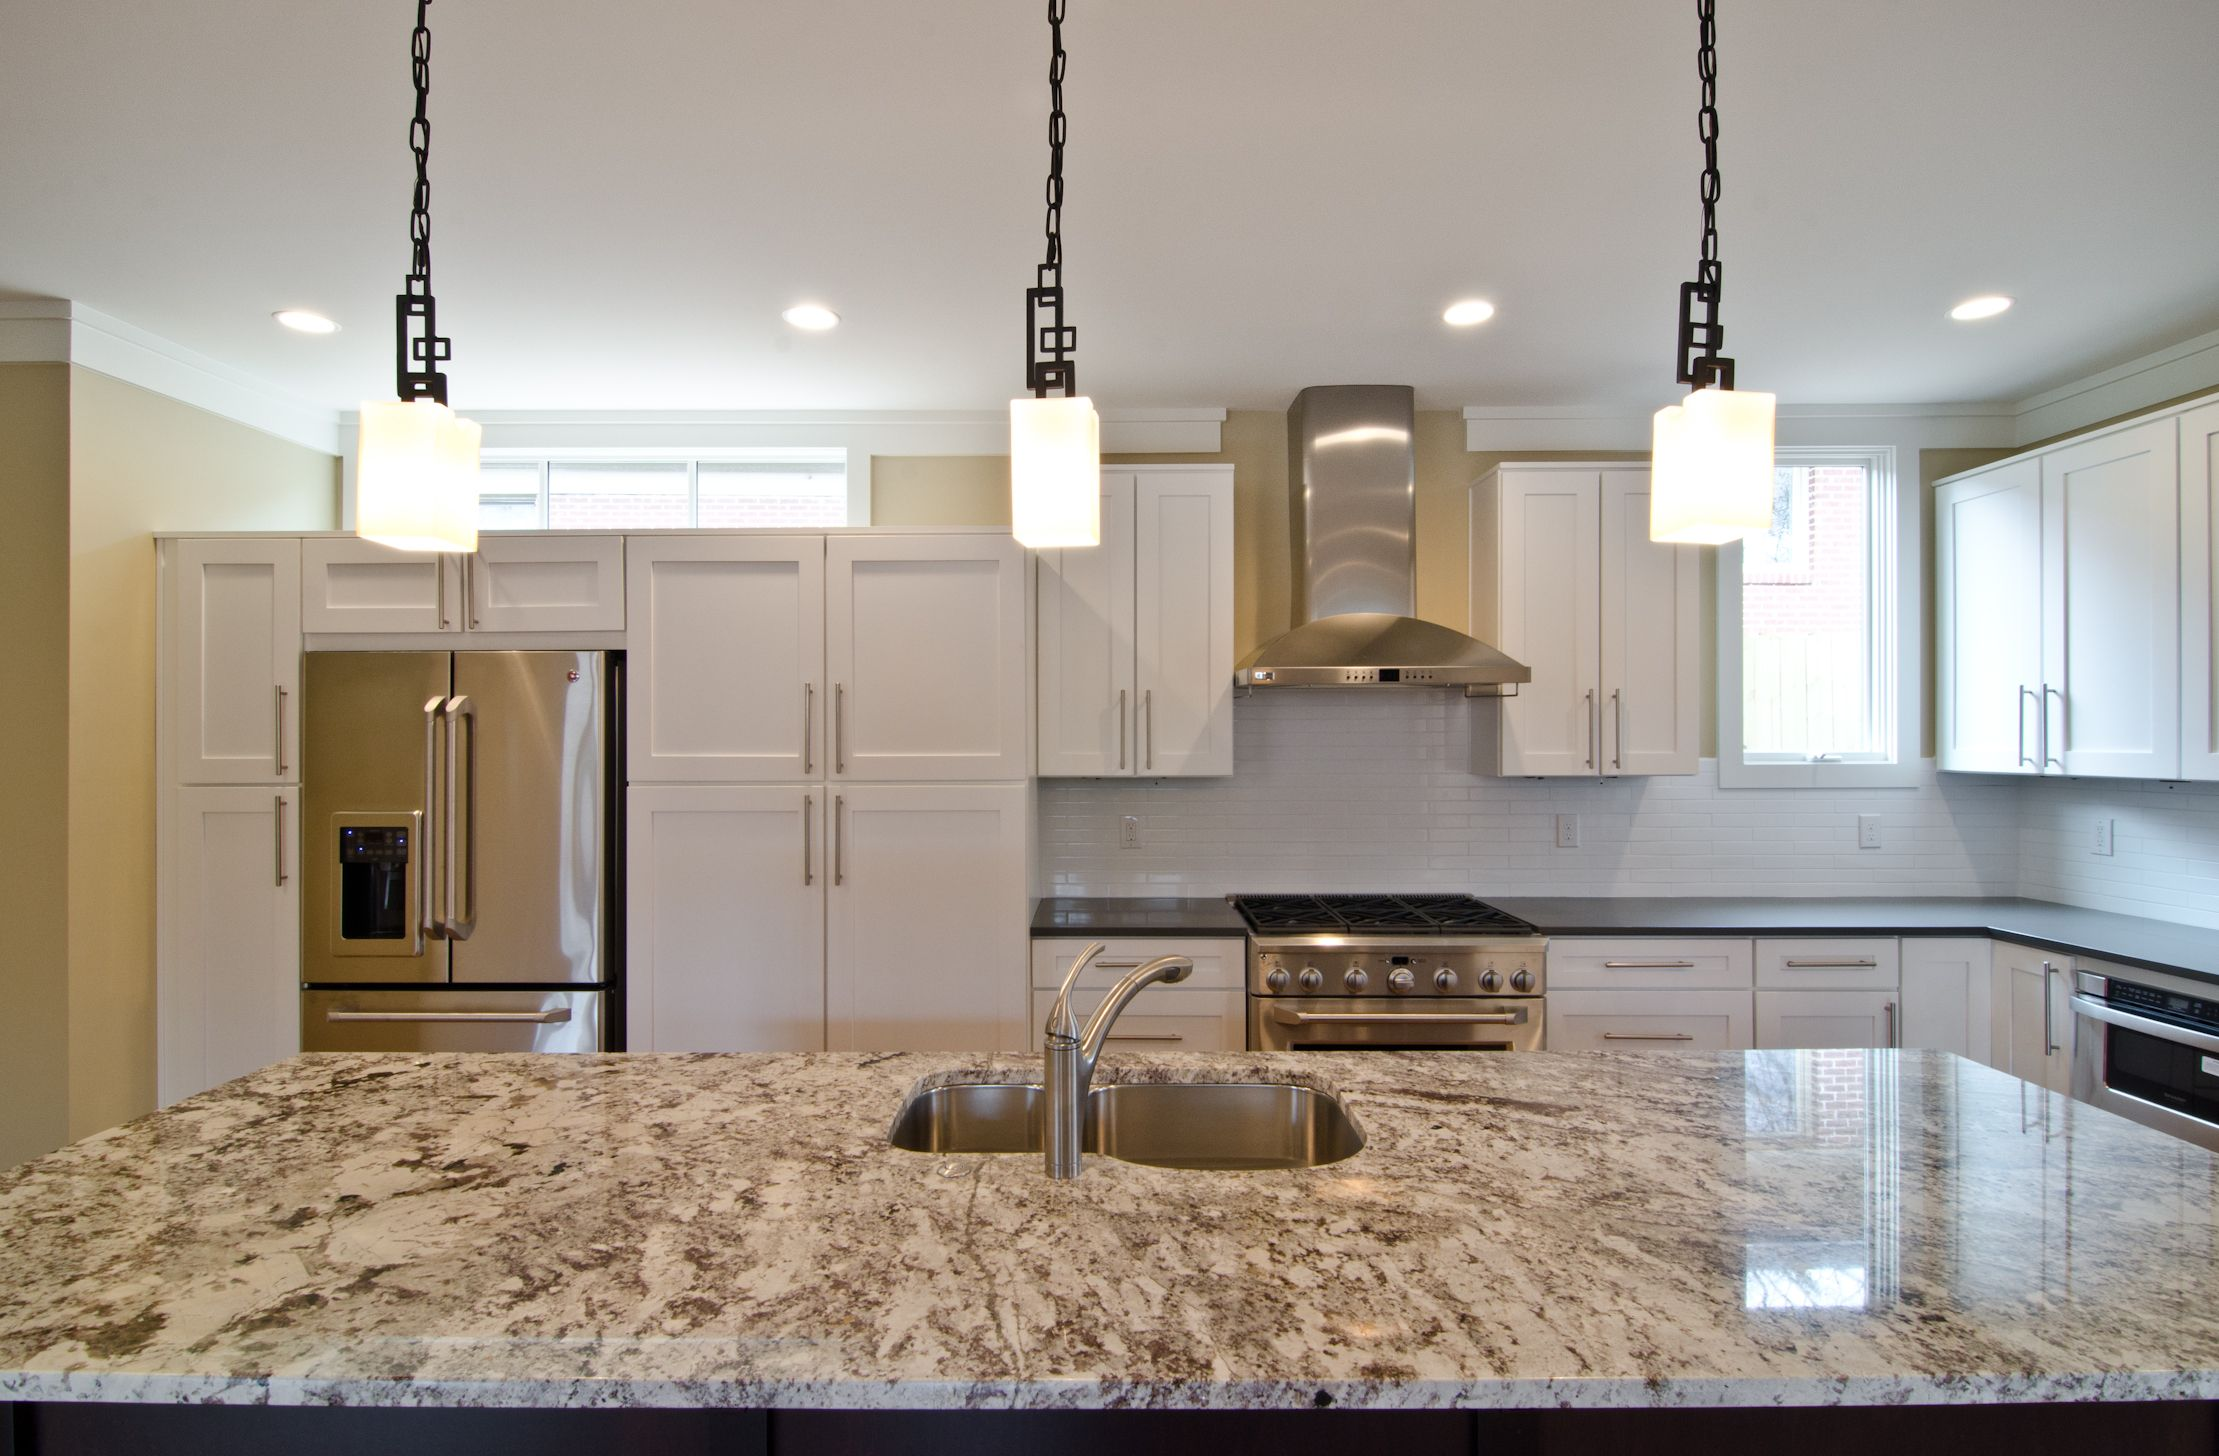 Artisan Stone Collection granite in a kitchen with clean lines